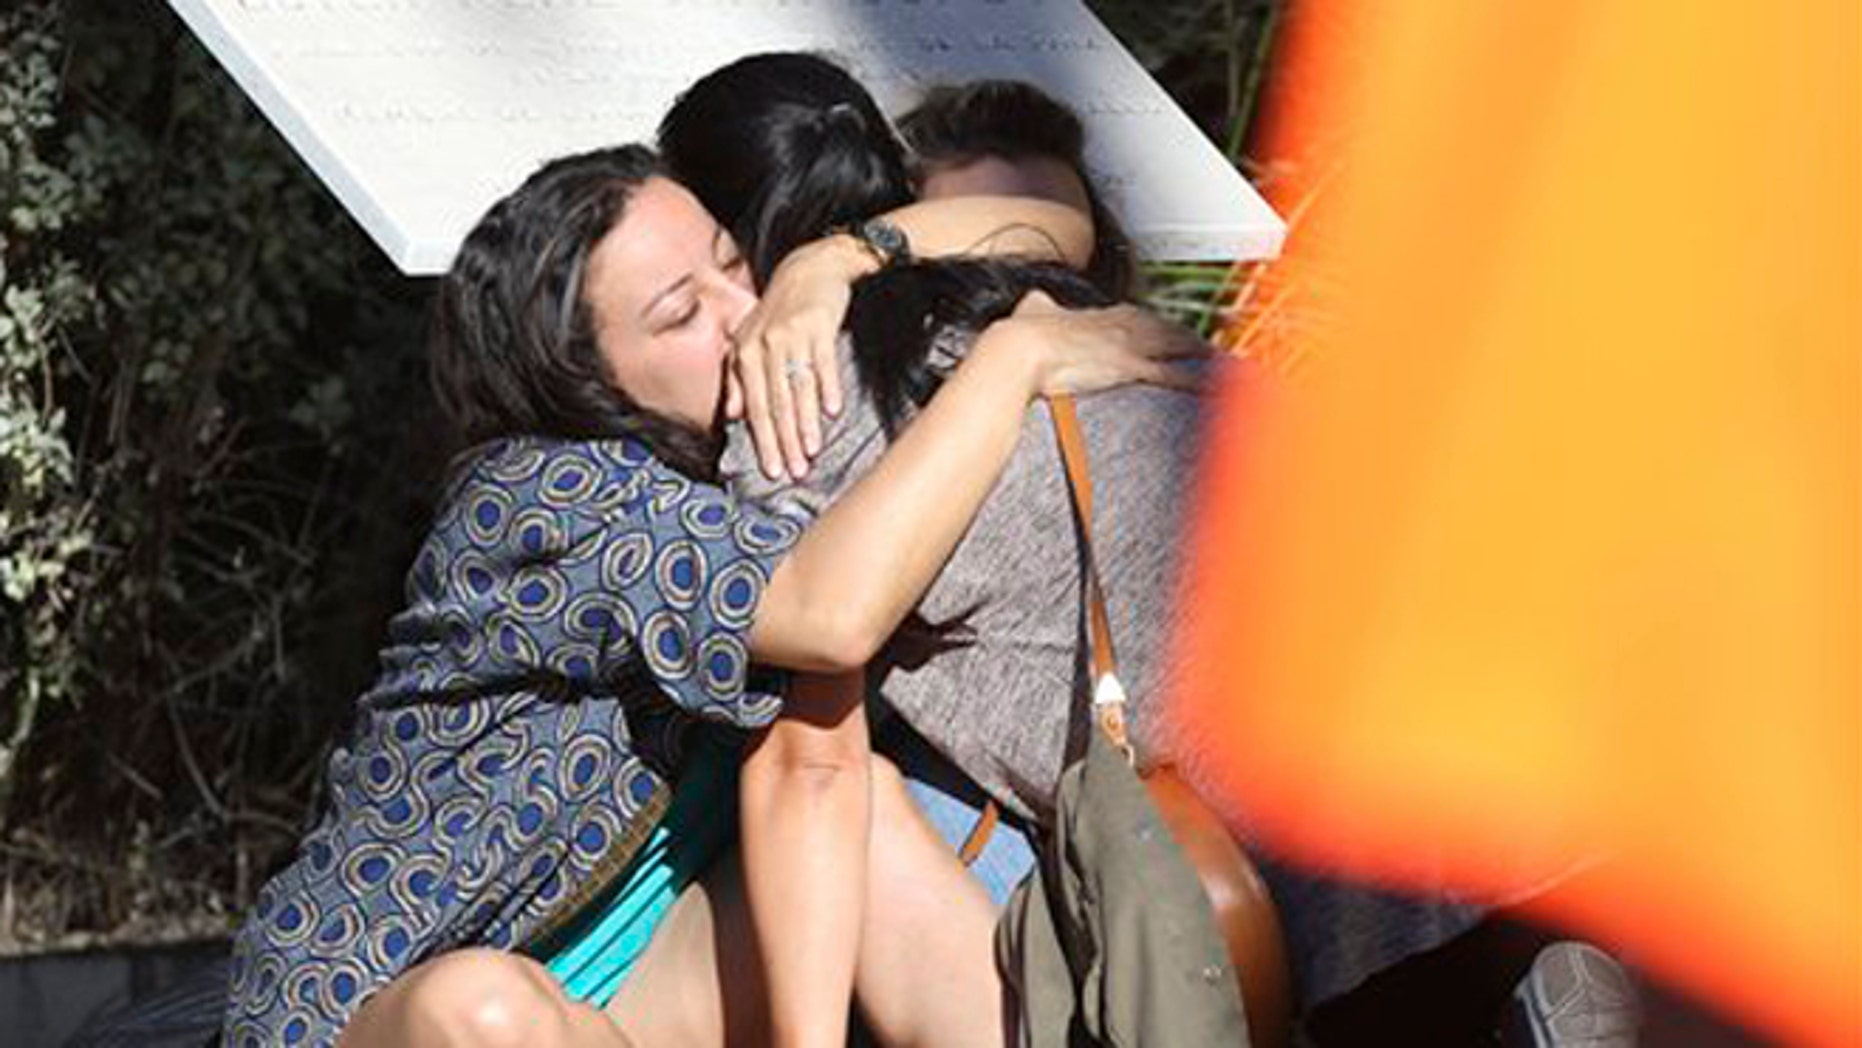 Parents of victims embrace each other near the scene of a truck attack in Nice, Friday, July 15, 2016.